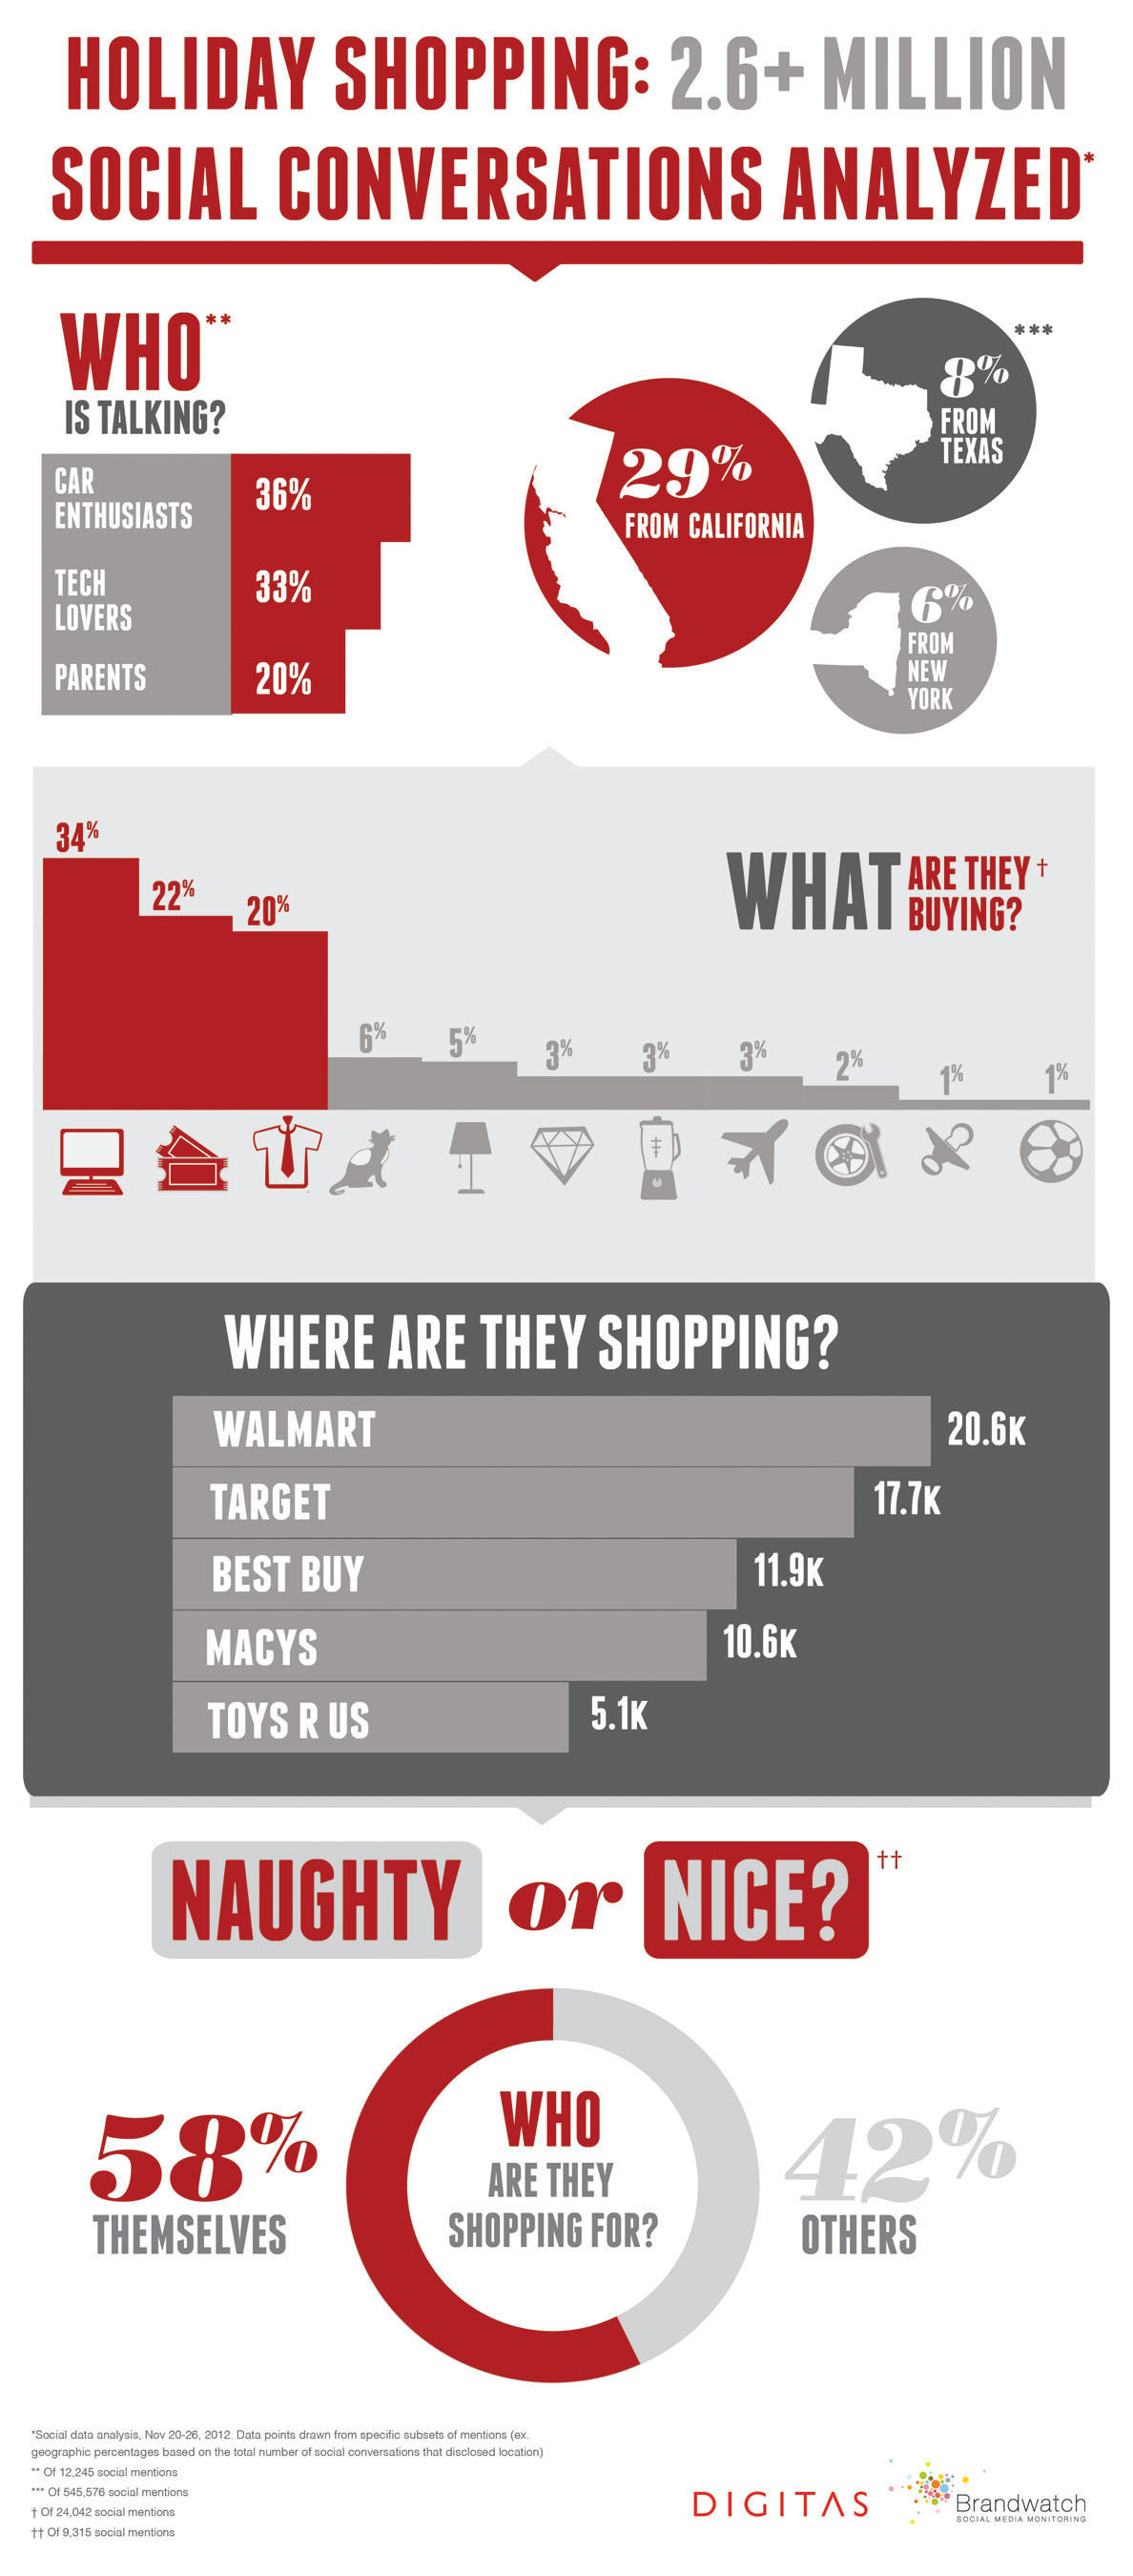 Naughty or Nice? Consumer Holiday Shopping Trends Revealed in 2.6  Million Social Conversations.  ...